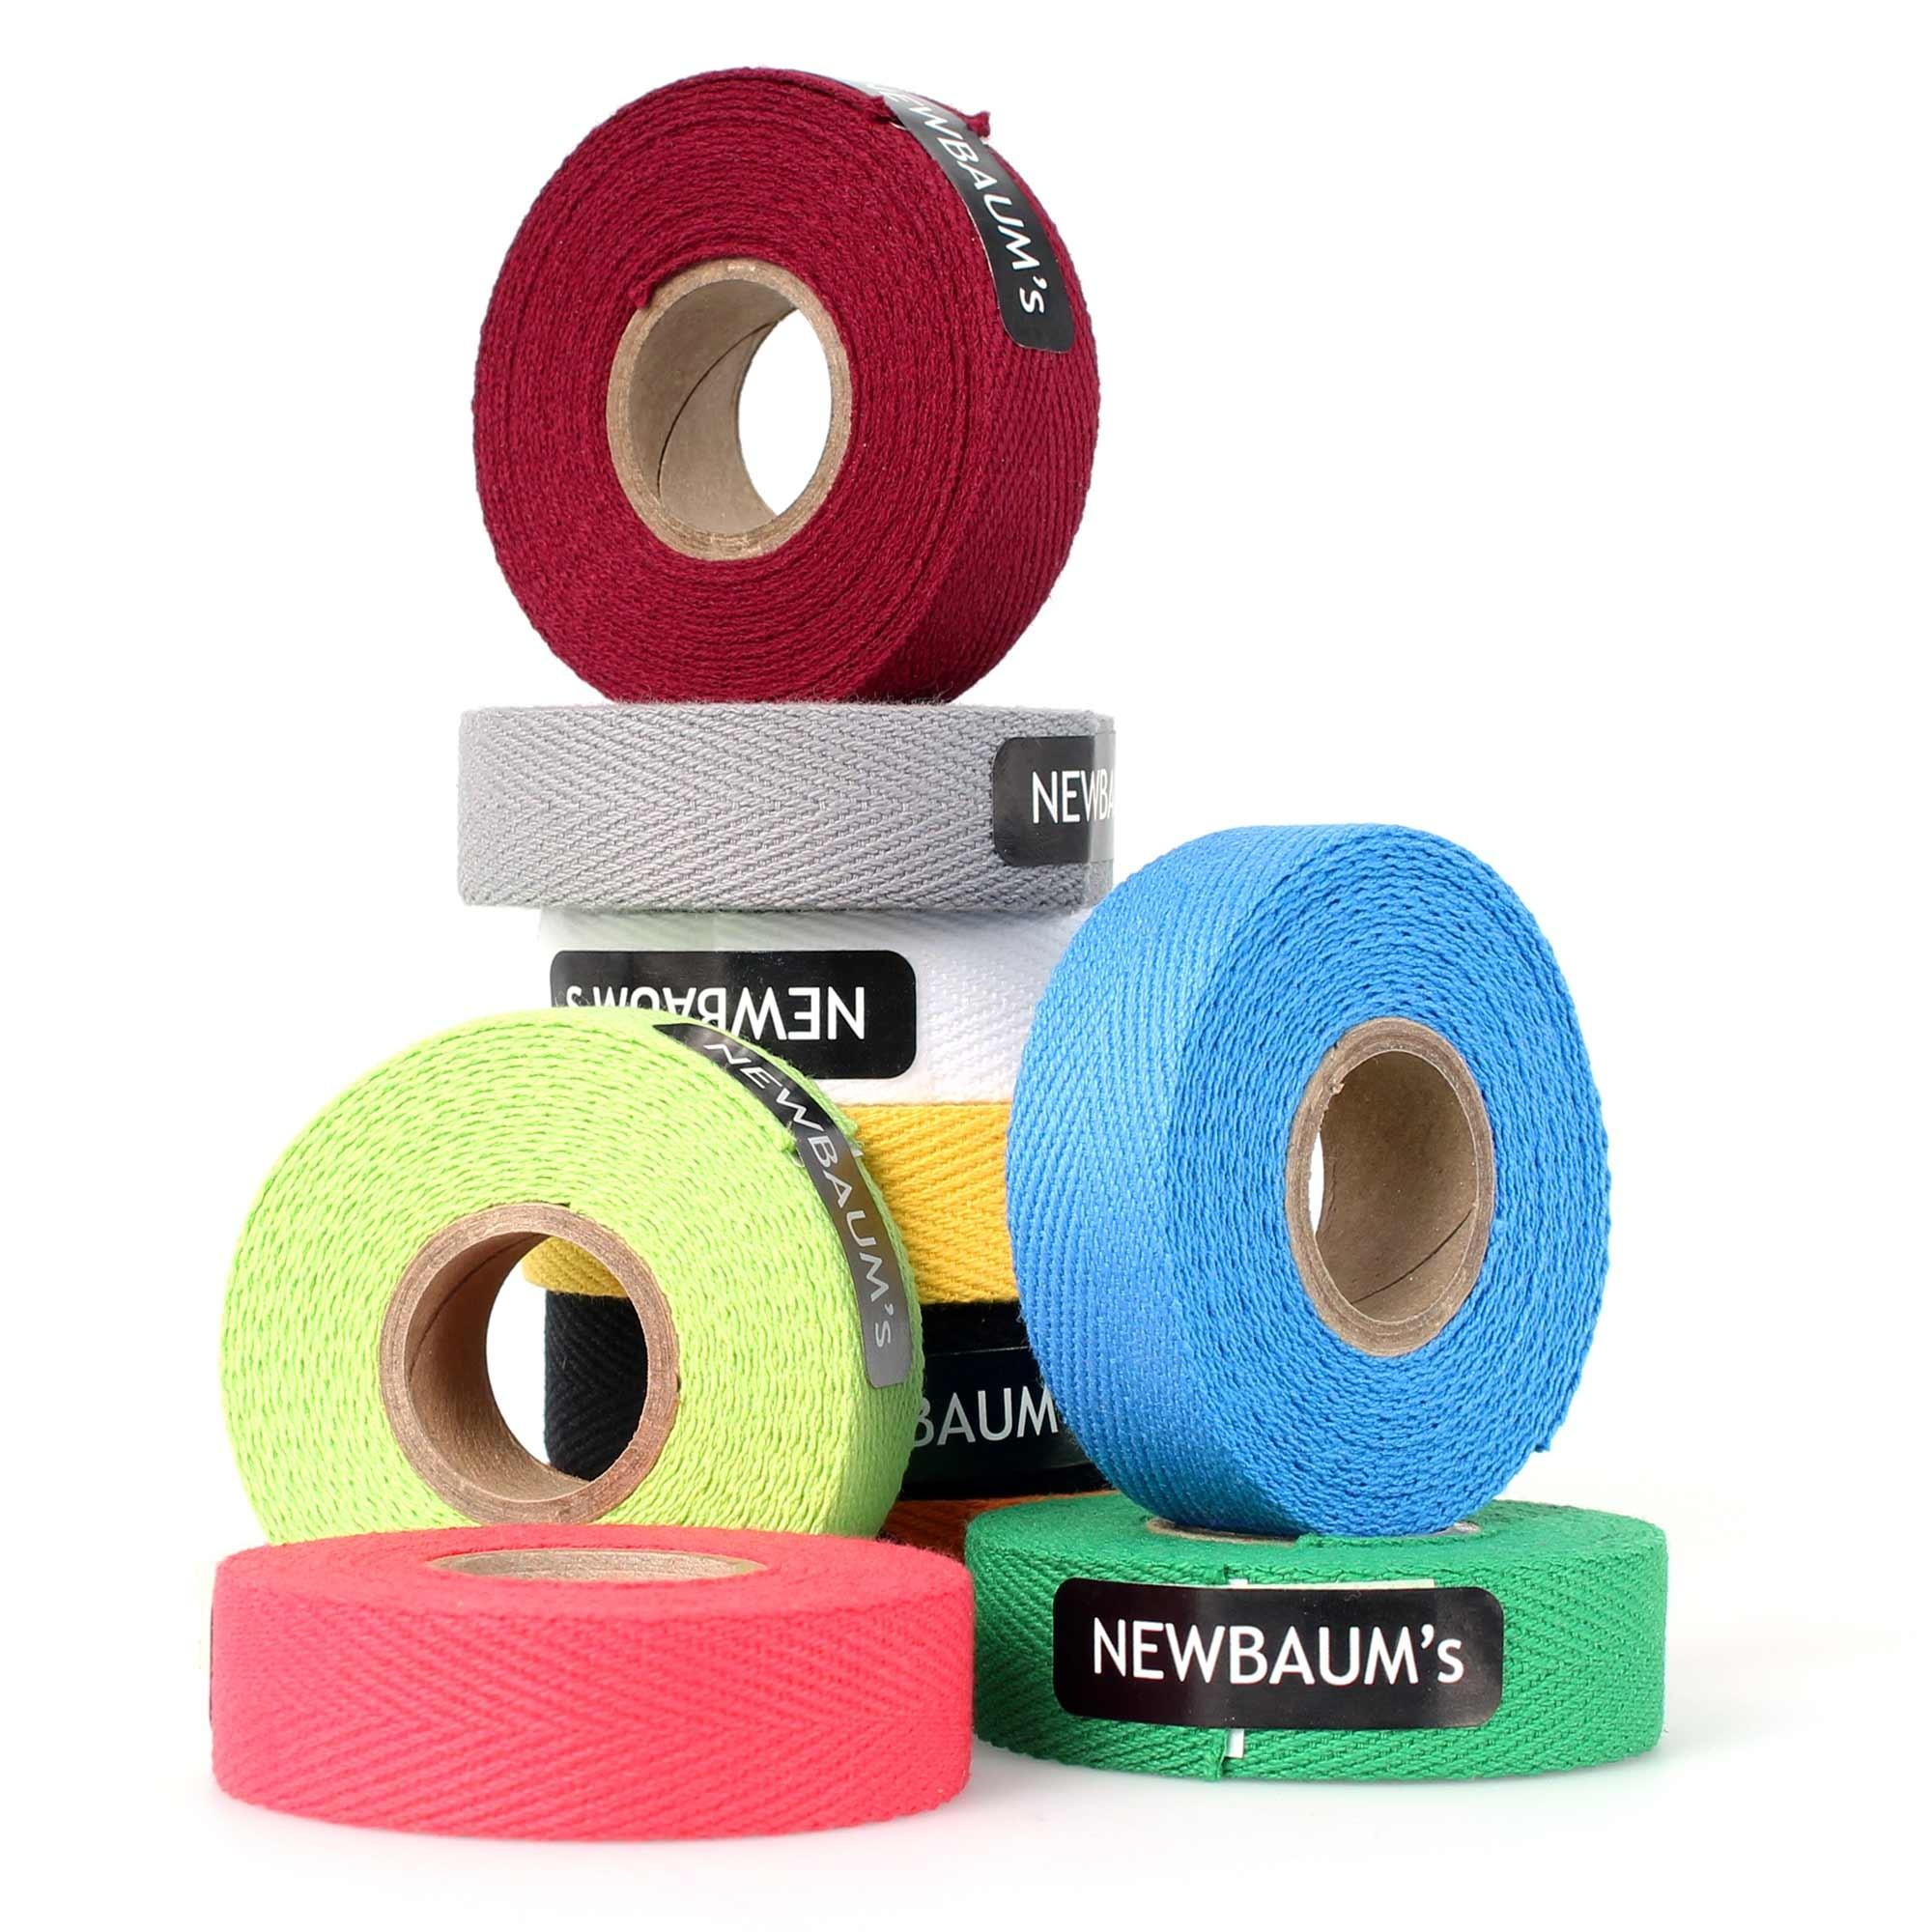 Newbaums Milled Cotton Cloth Tape